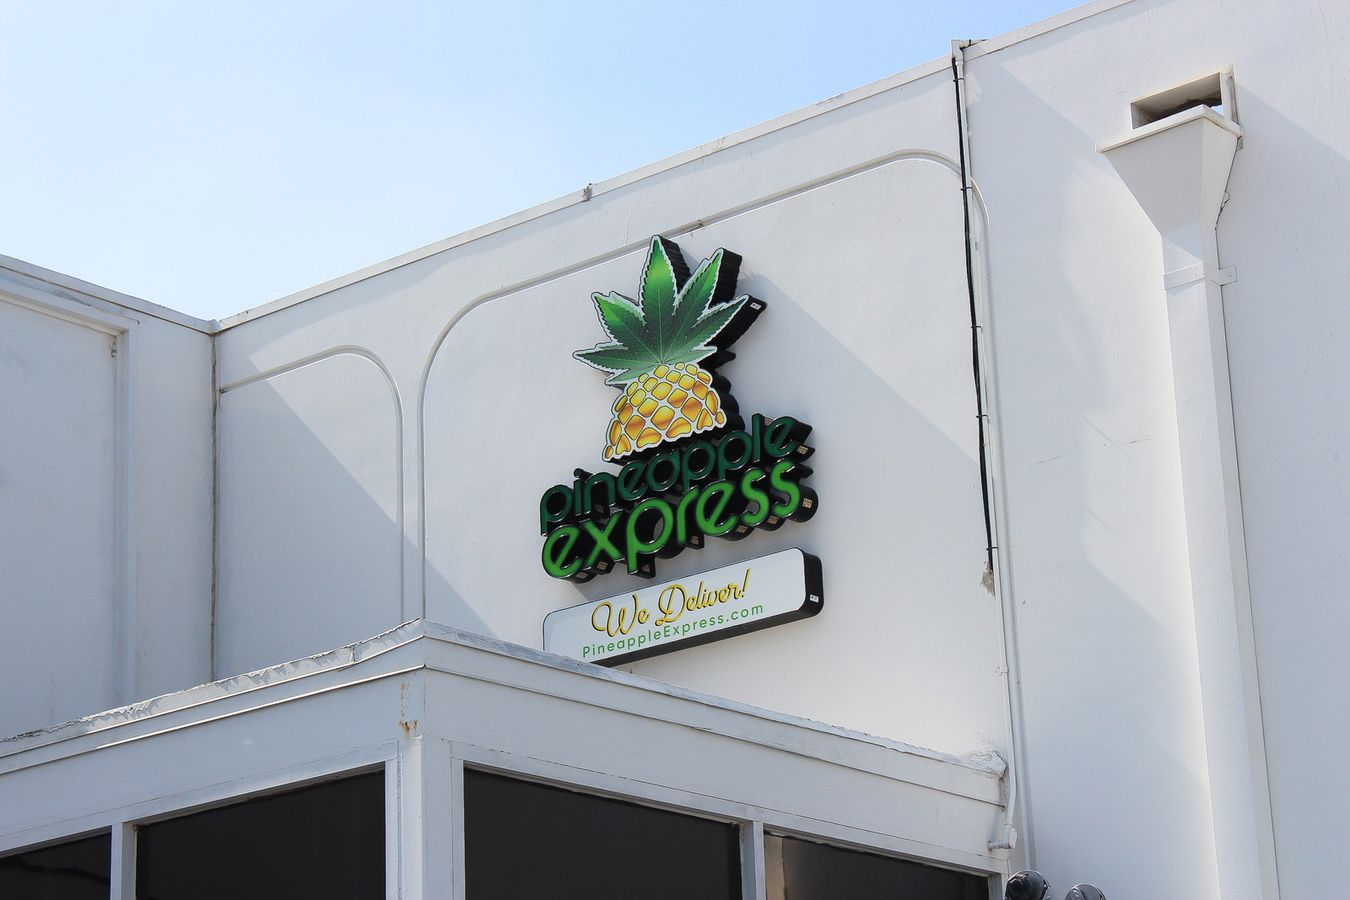 Pinapple Express lightbox sign